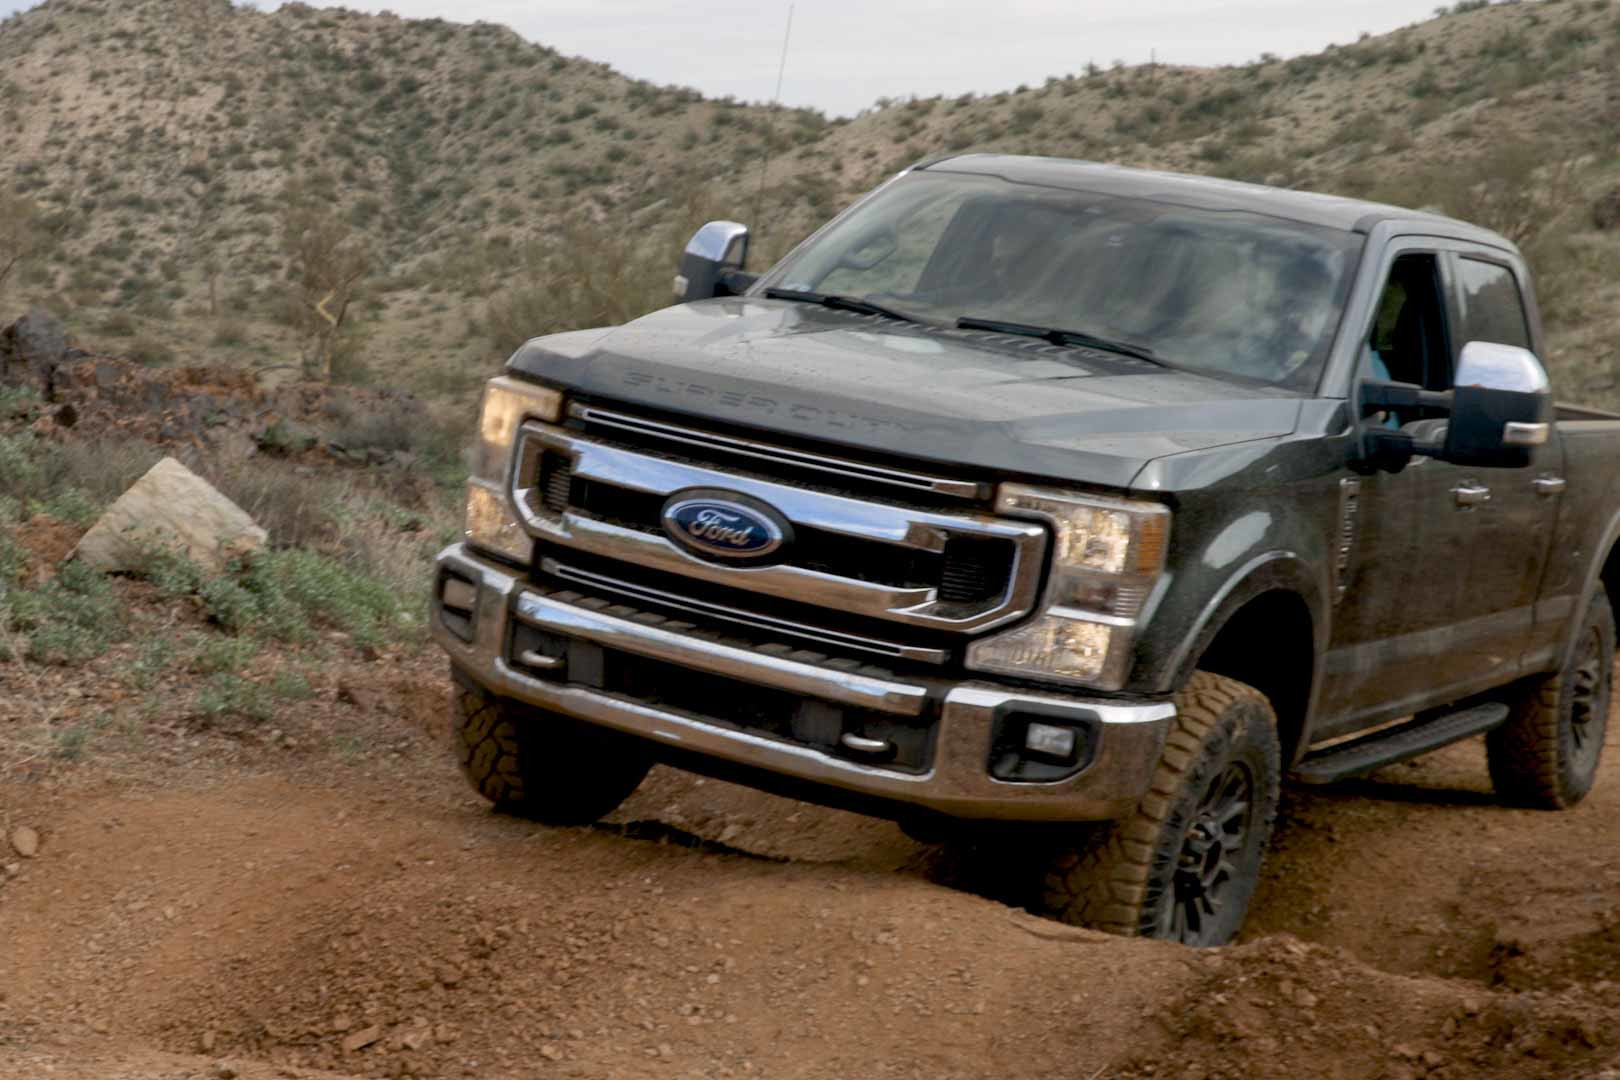 All the Pickup Truck News: 2020 Ford Super Duty Driven, 2020 Chevy Silverado 1500 Updates, 1794 Tundra and More